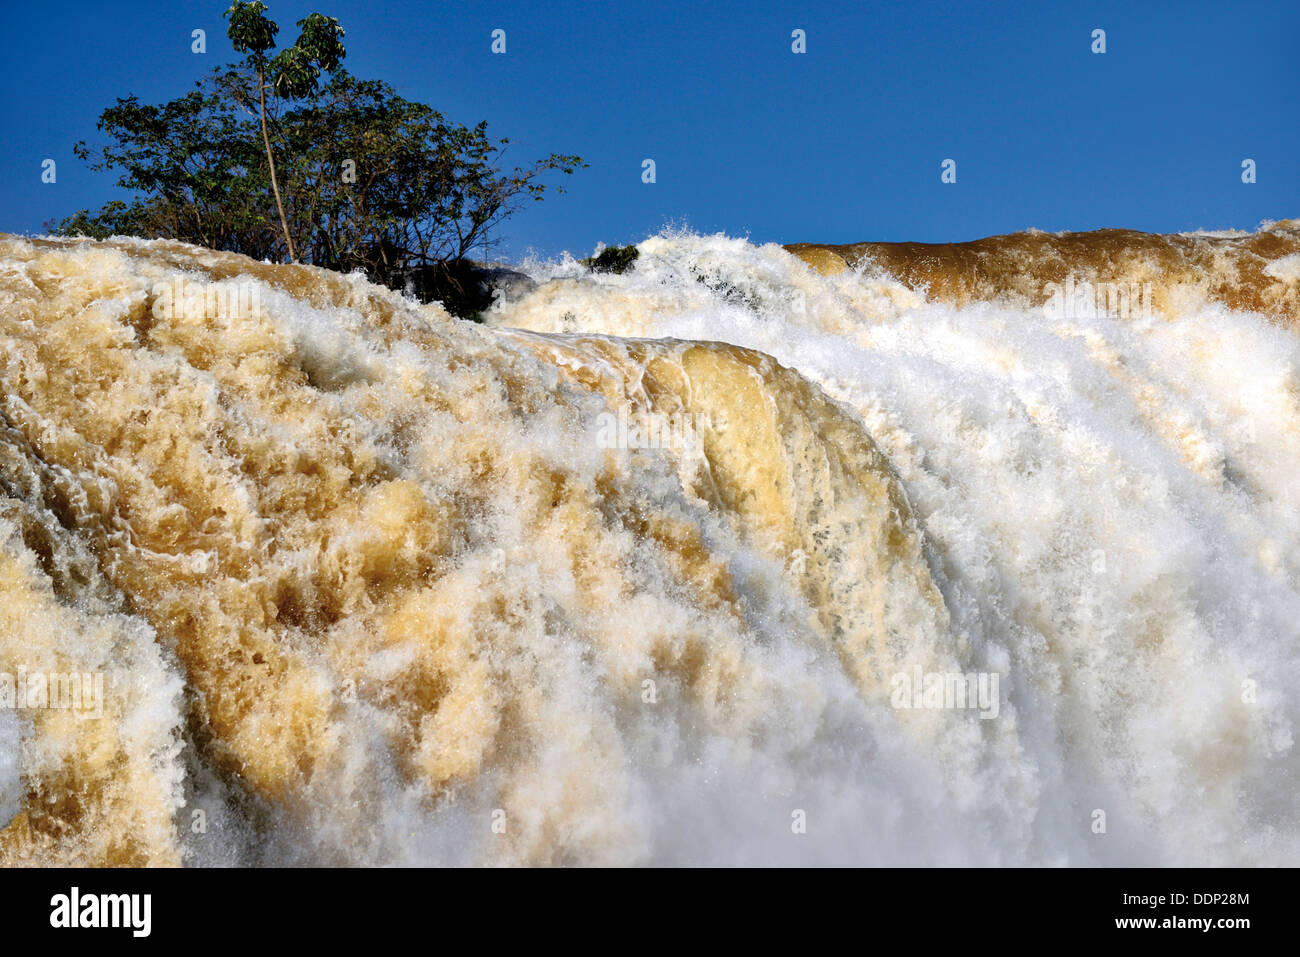 Brazil, Paraná: Iguassu Falls  with record water levels after heavy rainfall - Stock Image